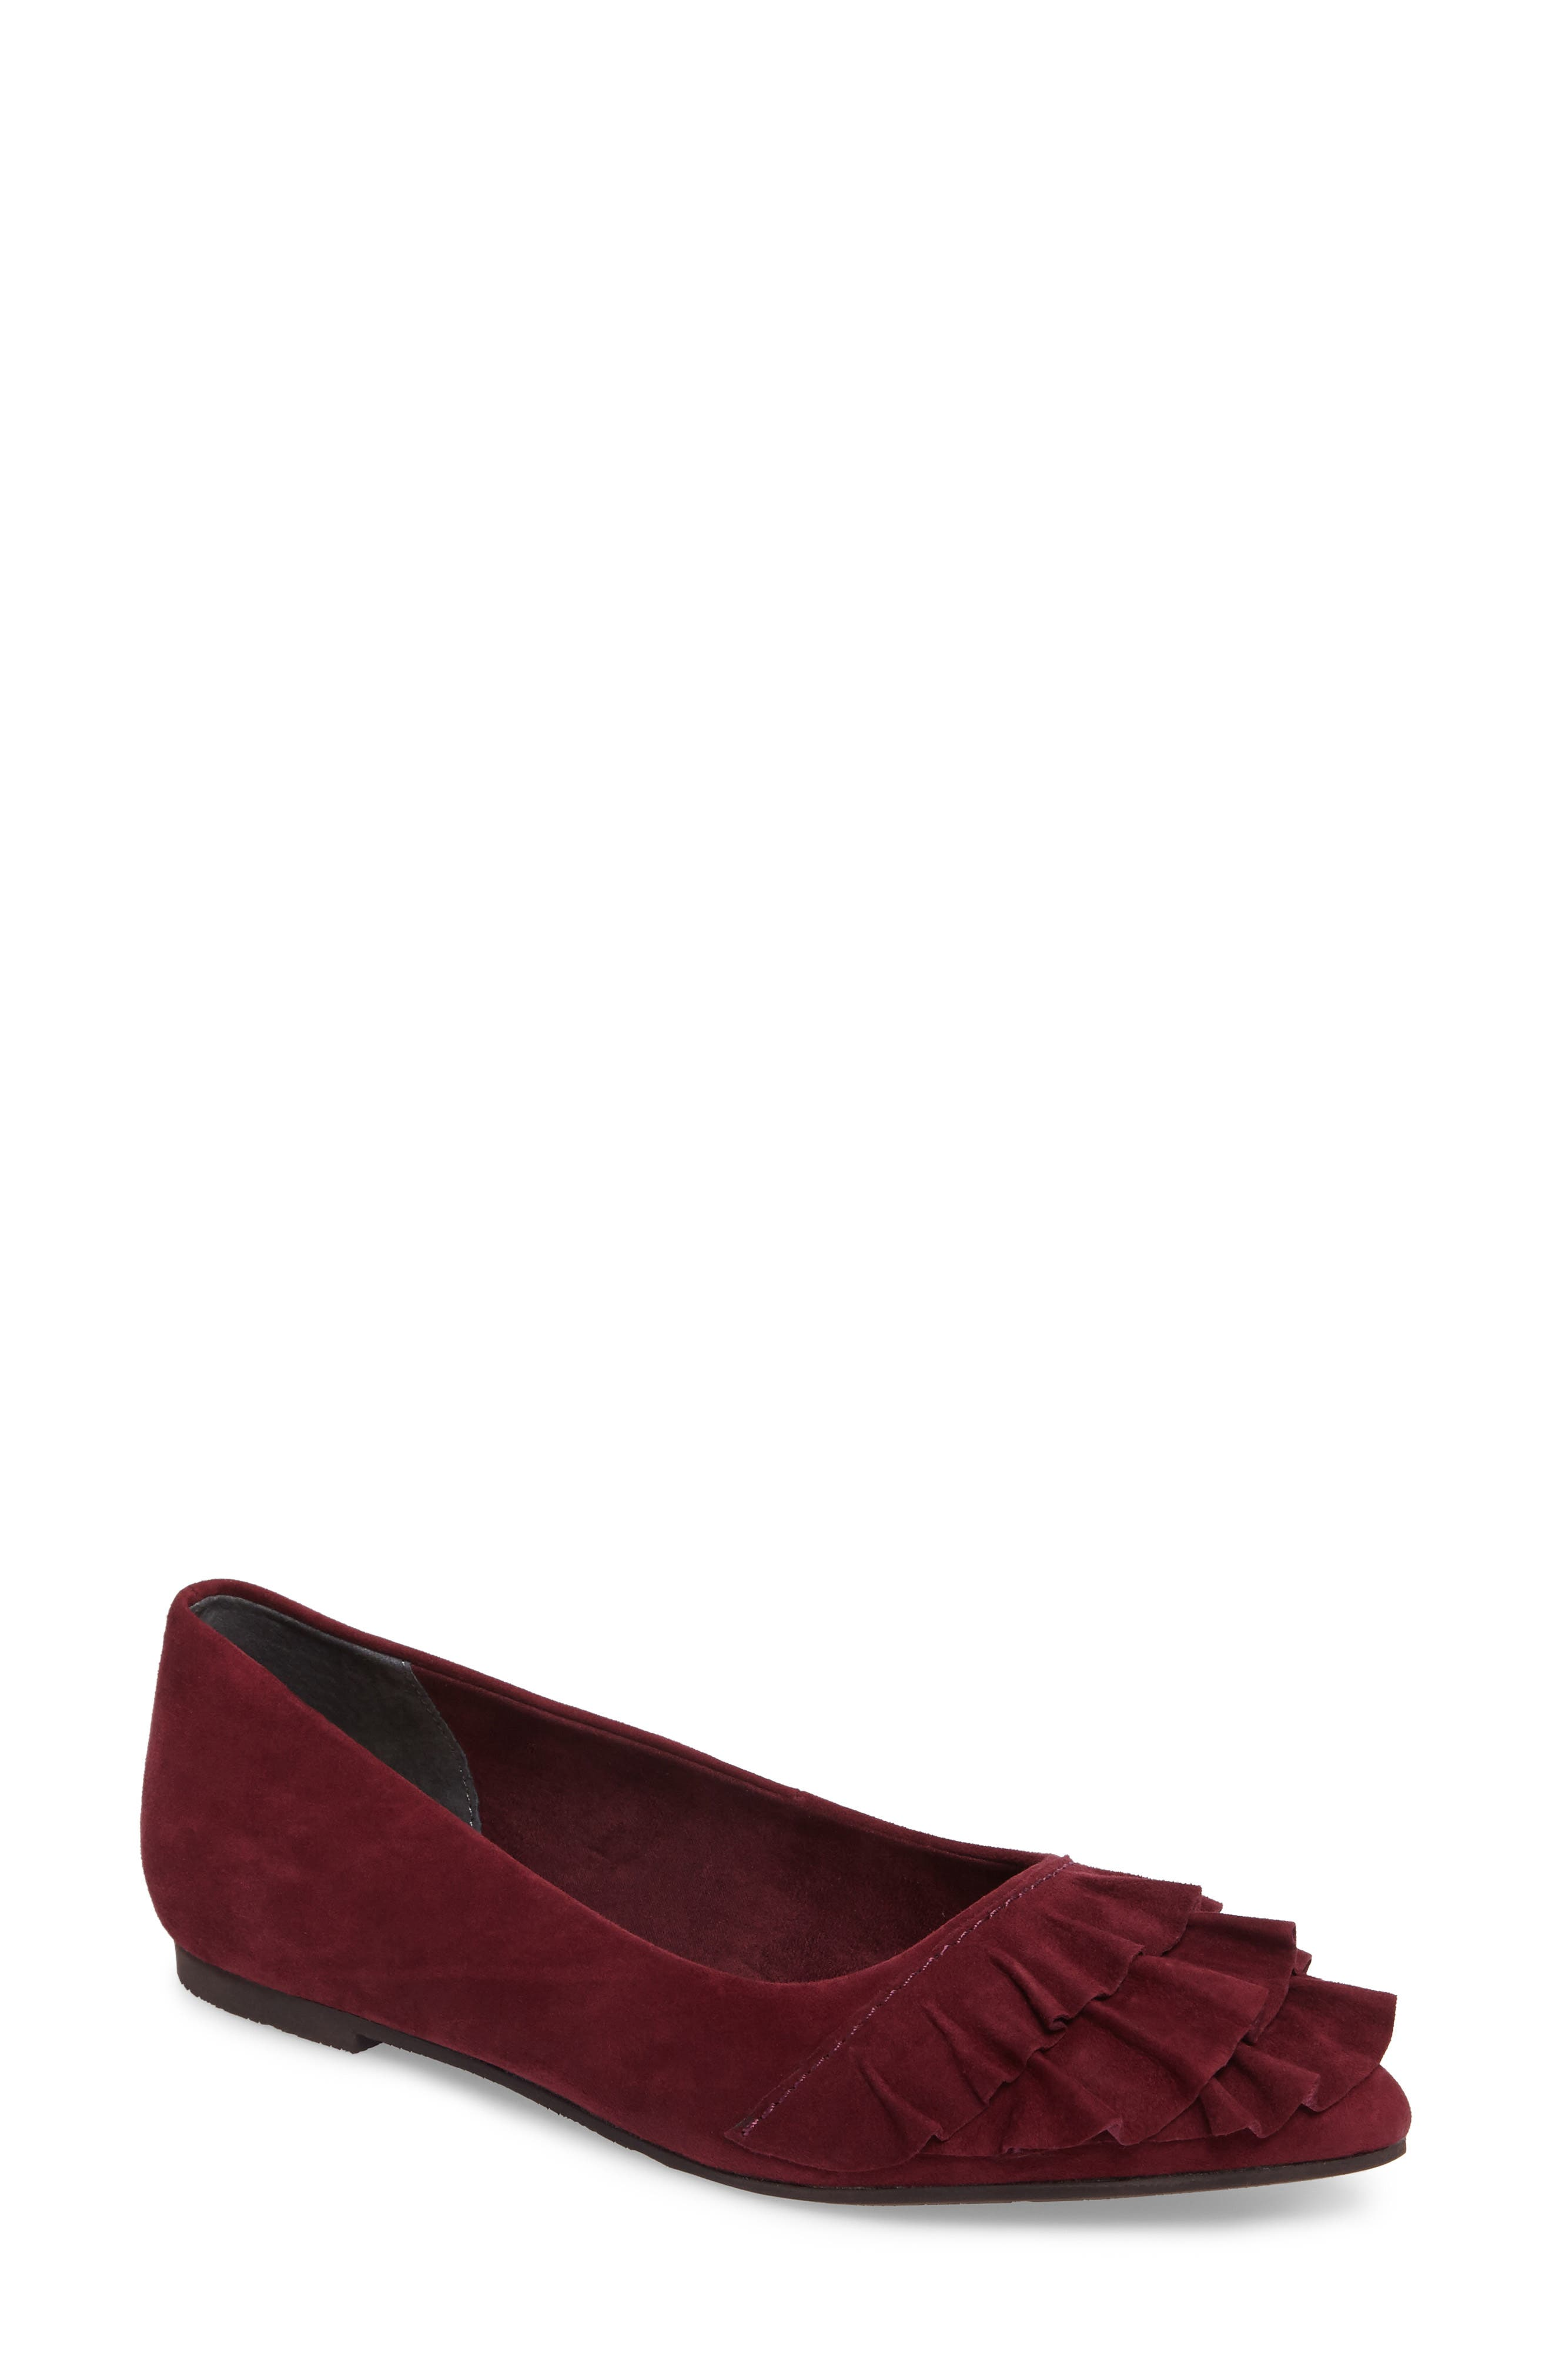 Downstage Pointy Toe Flat,                         Main,                         color, Burgundy Suede